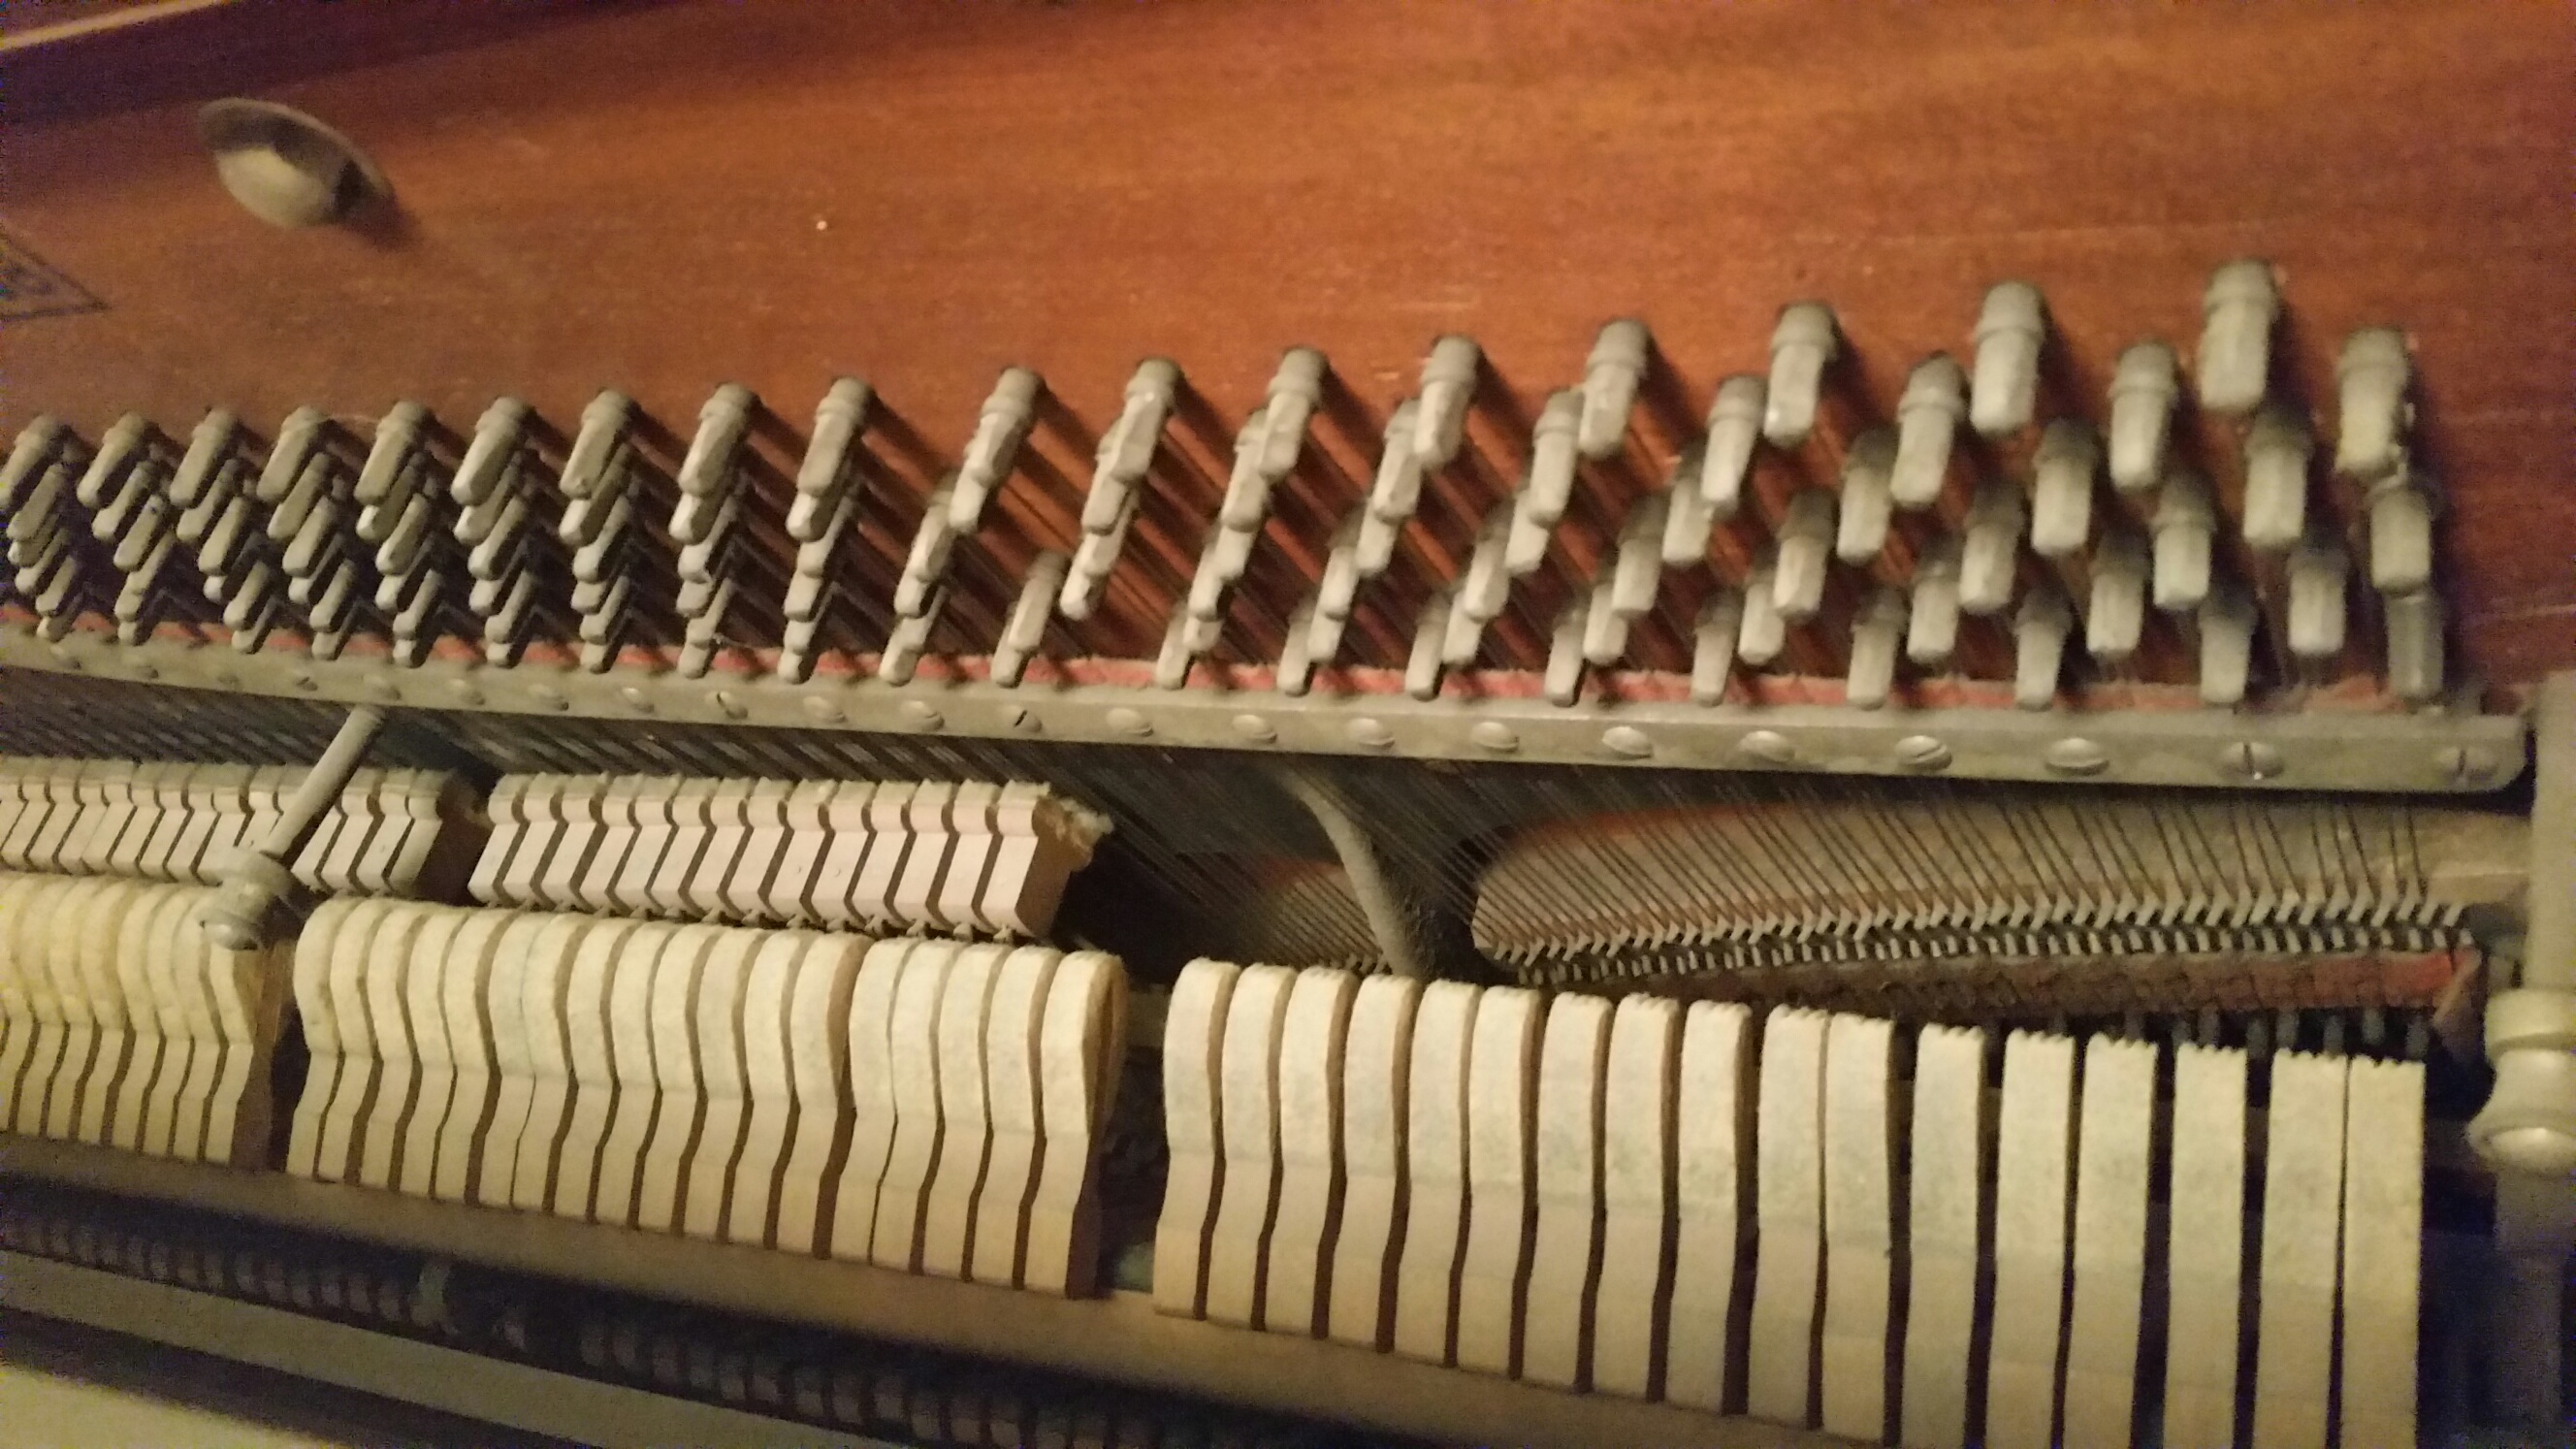 I Have A Hinze Of Chicago Upright Piano That My Mother Purchased